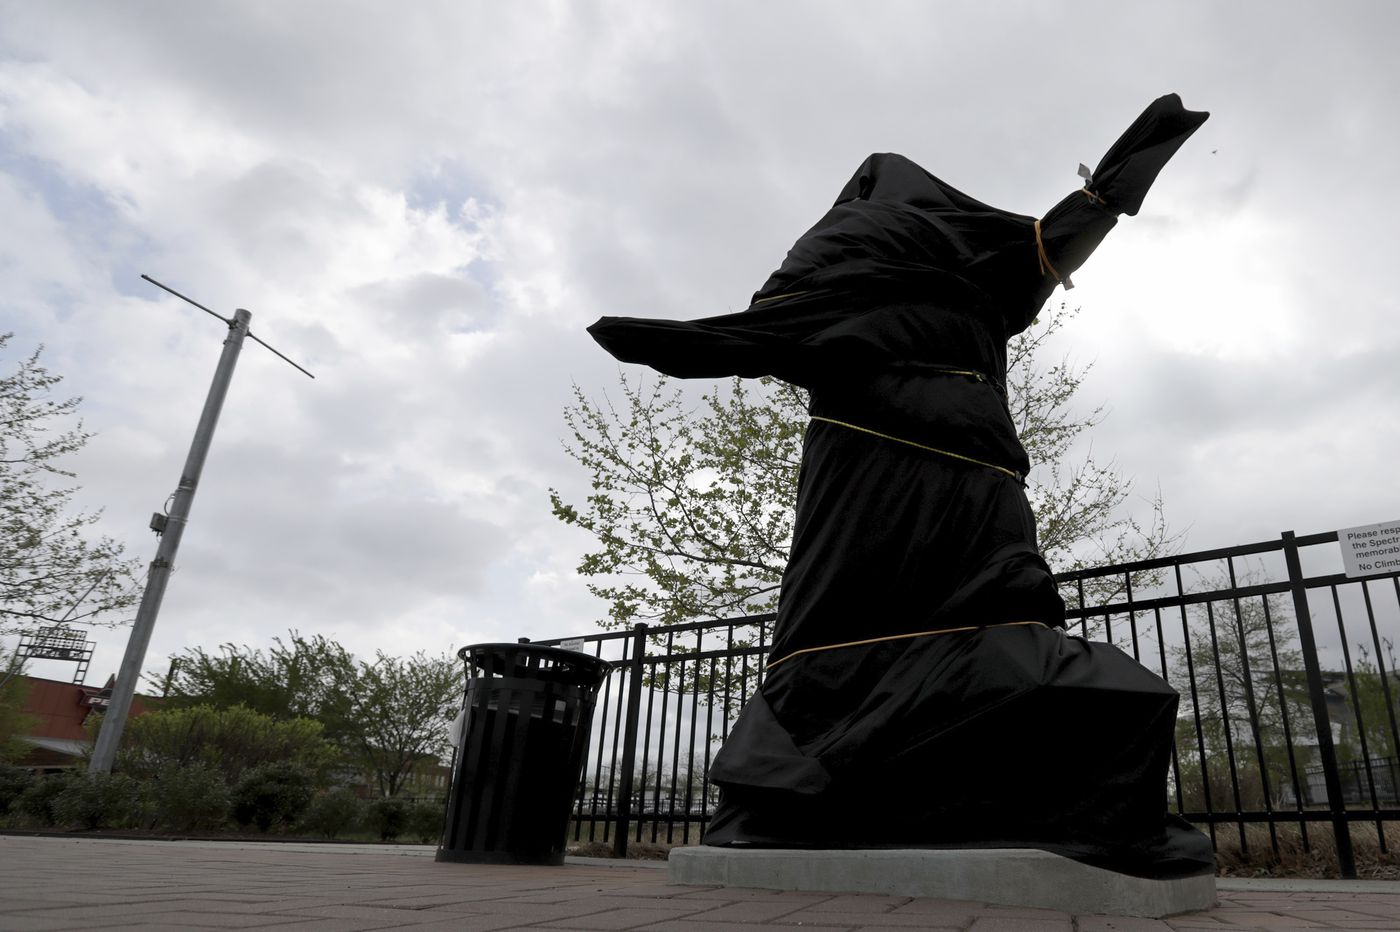 As the Kate Smith statue debate roils, here is a South Philly sports sculptor who also didn't fit the mold